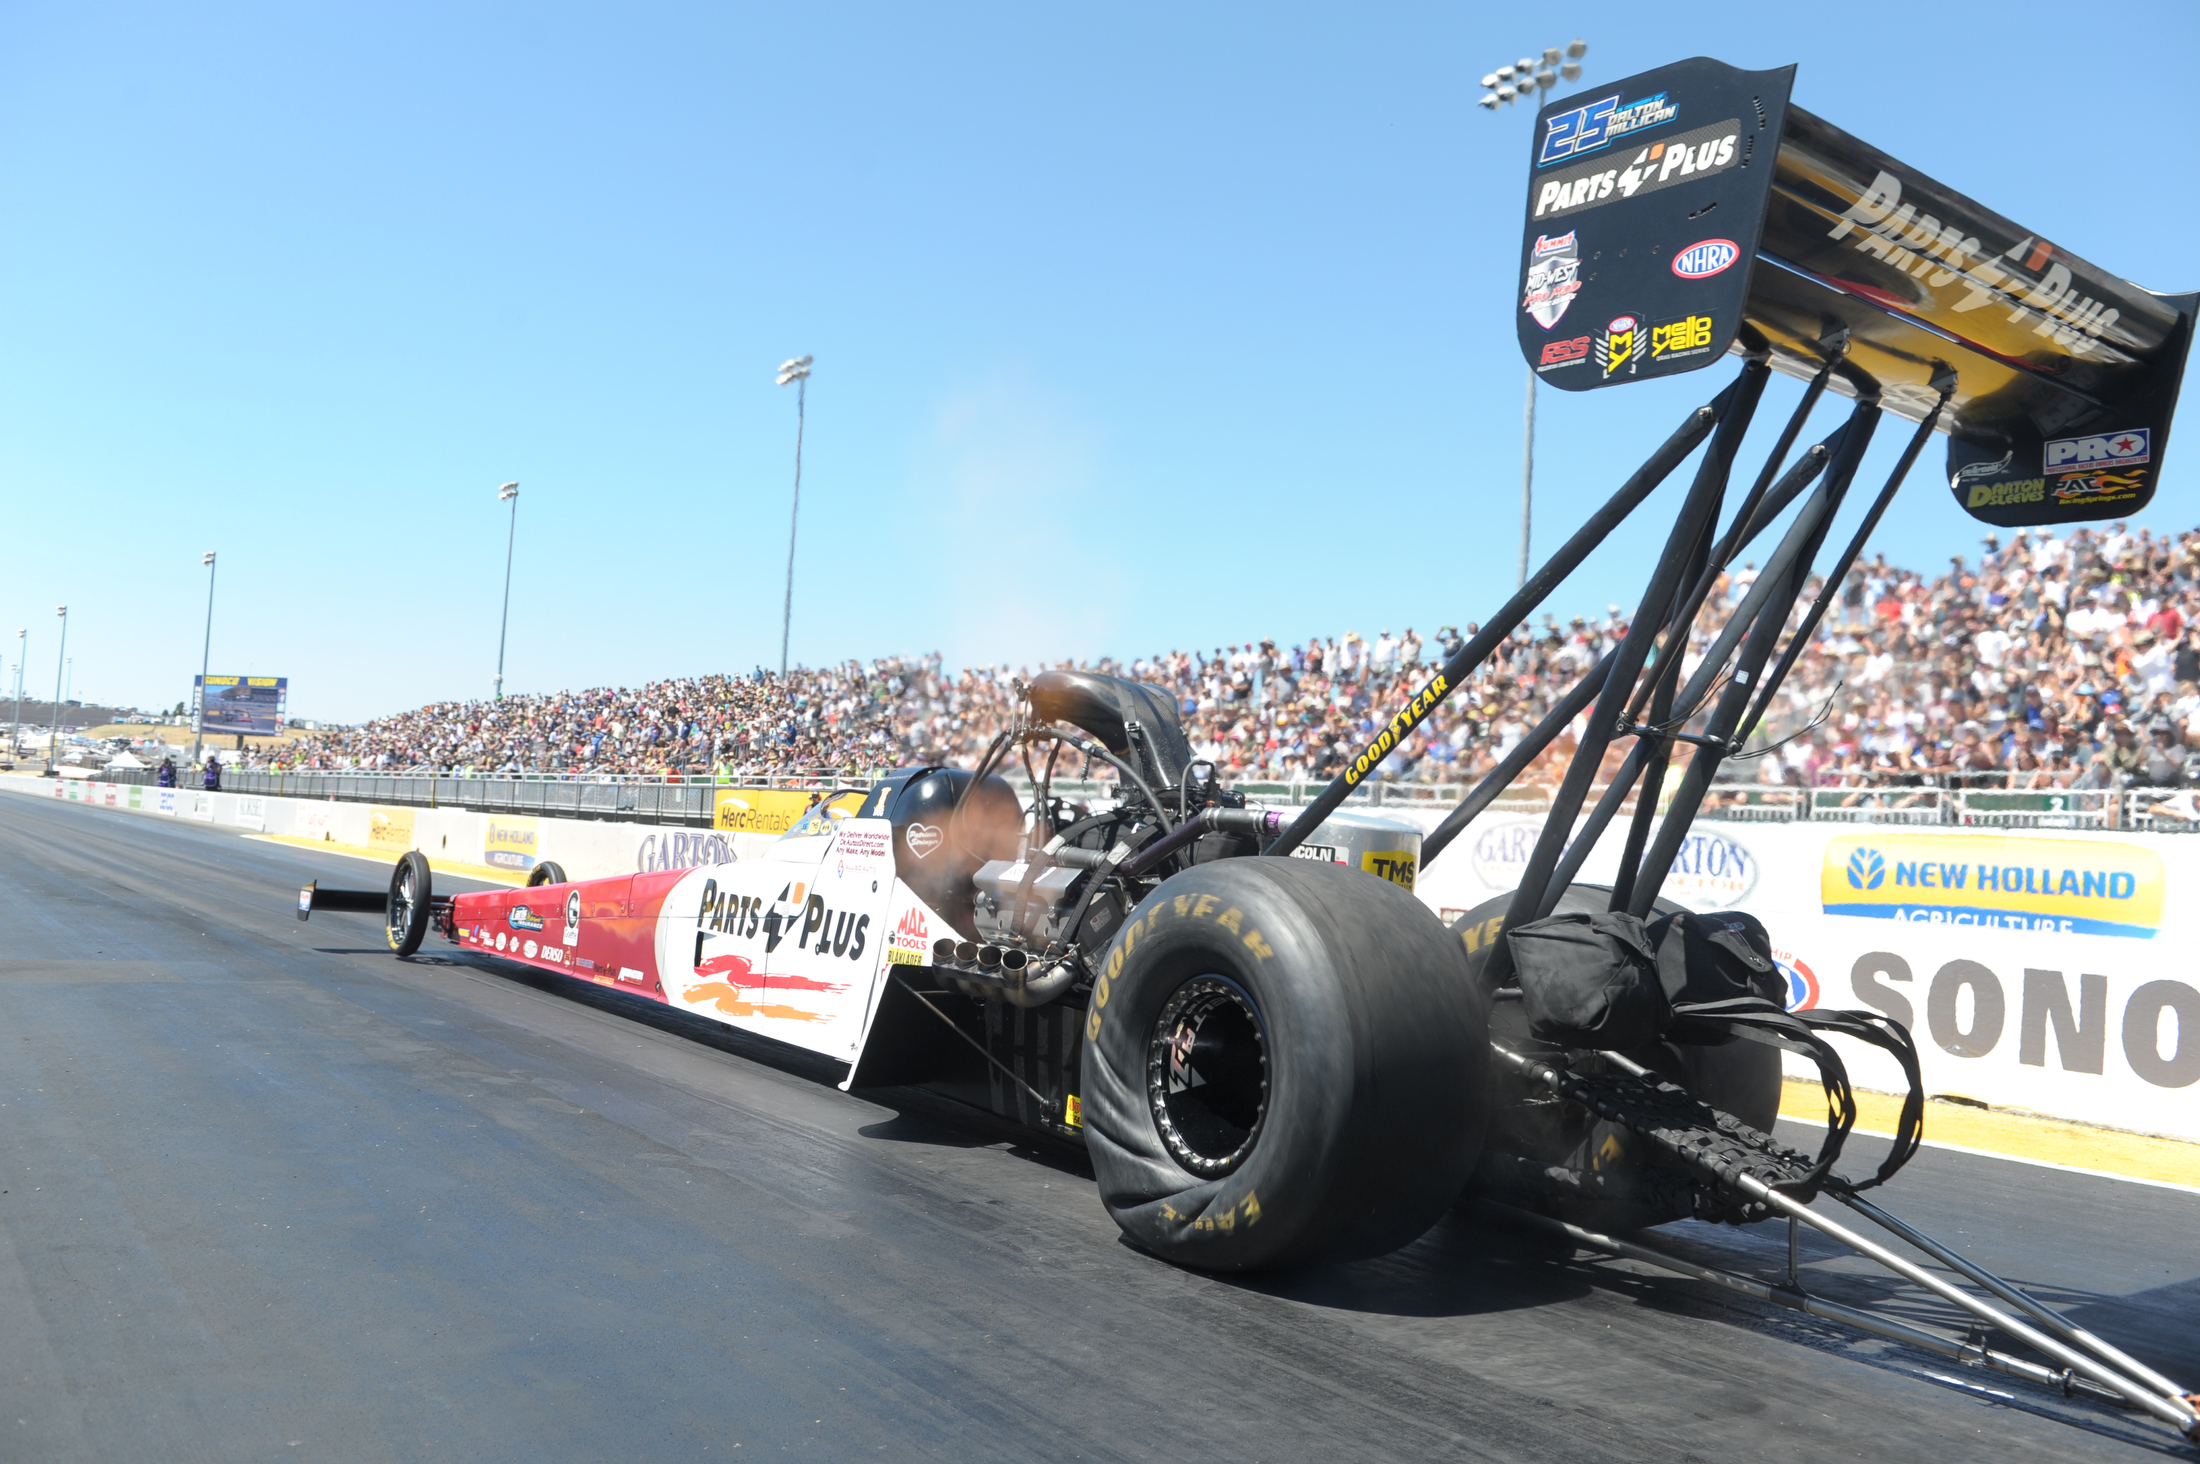 Top Fuel Dragster pilot Clay Millican racing on Saturday at the 2019 Toyota NHRA Sonoma Nationals